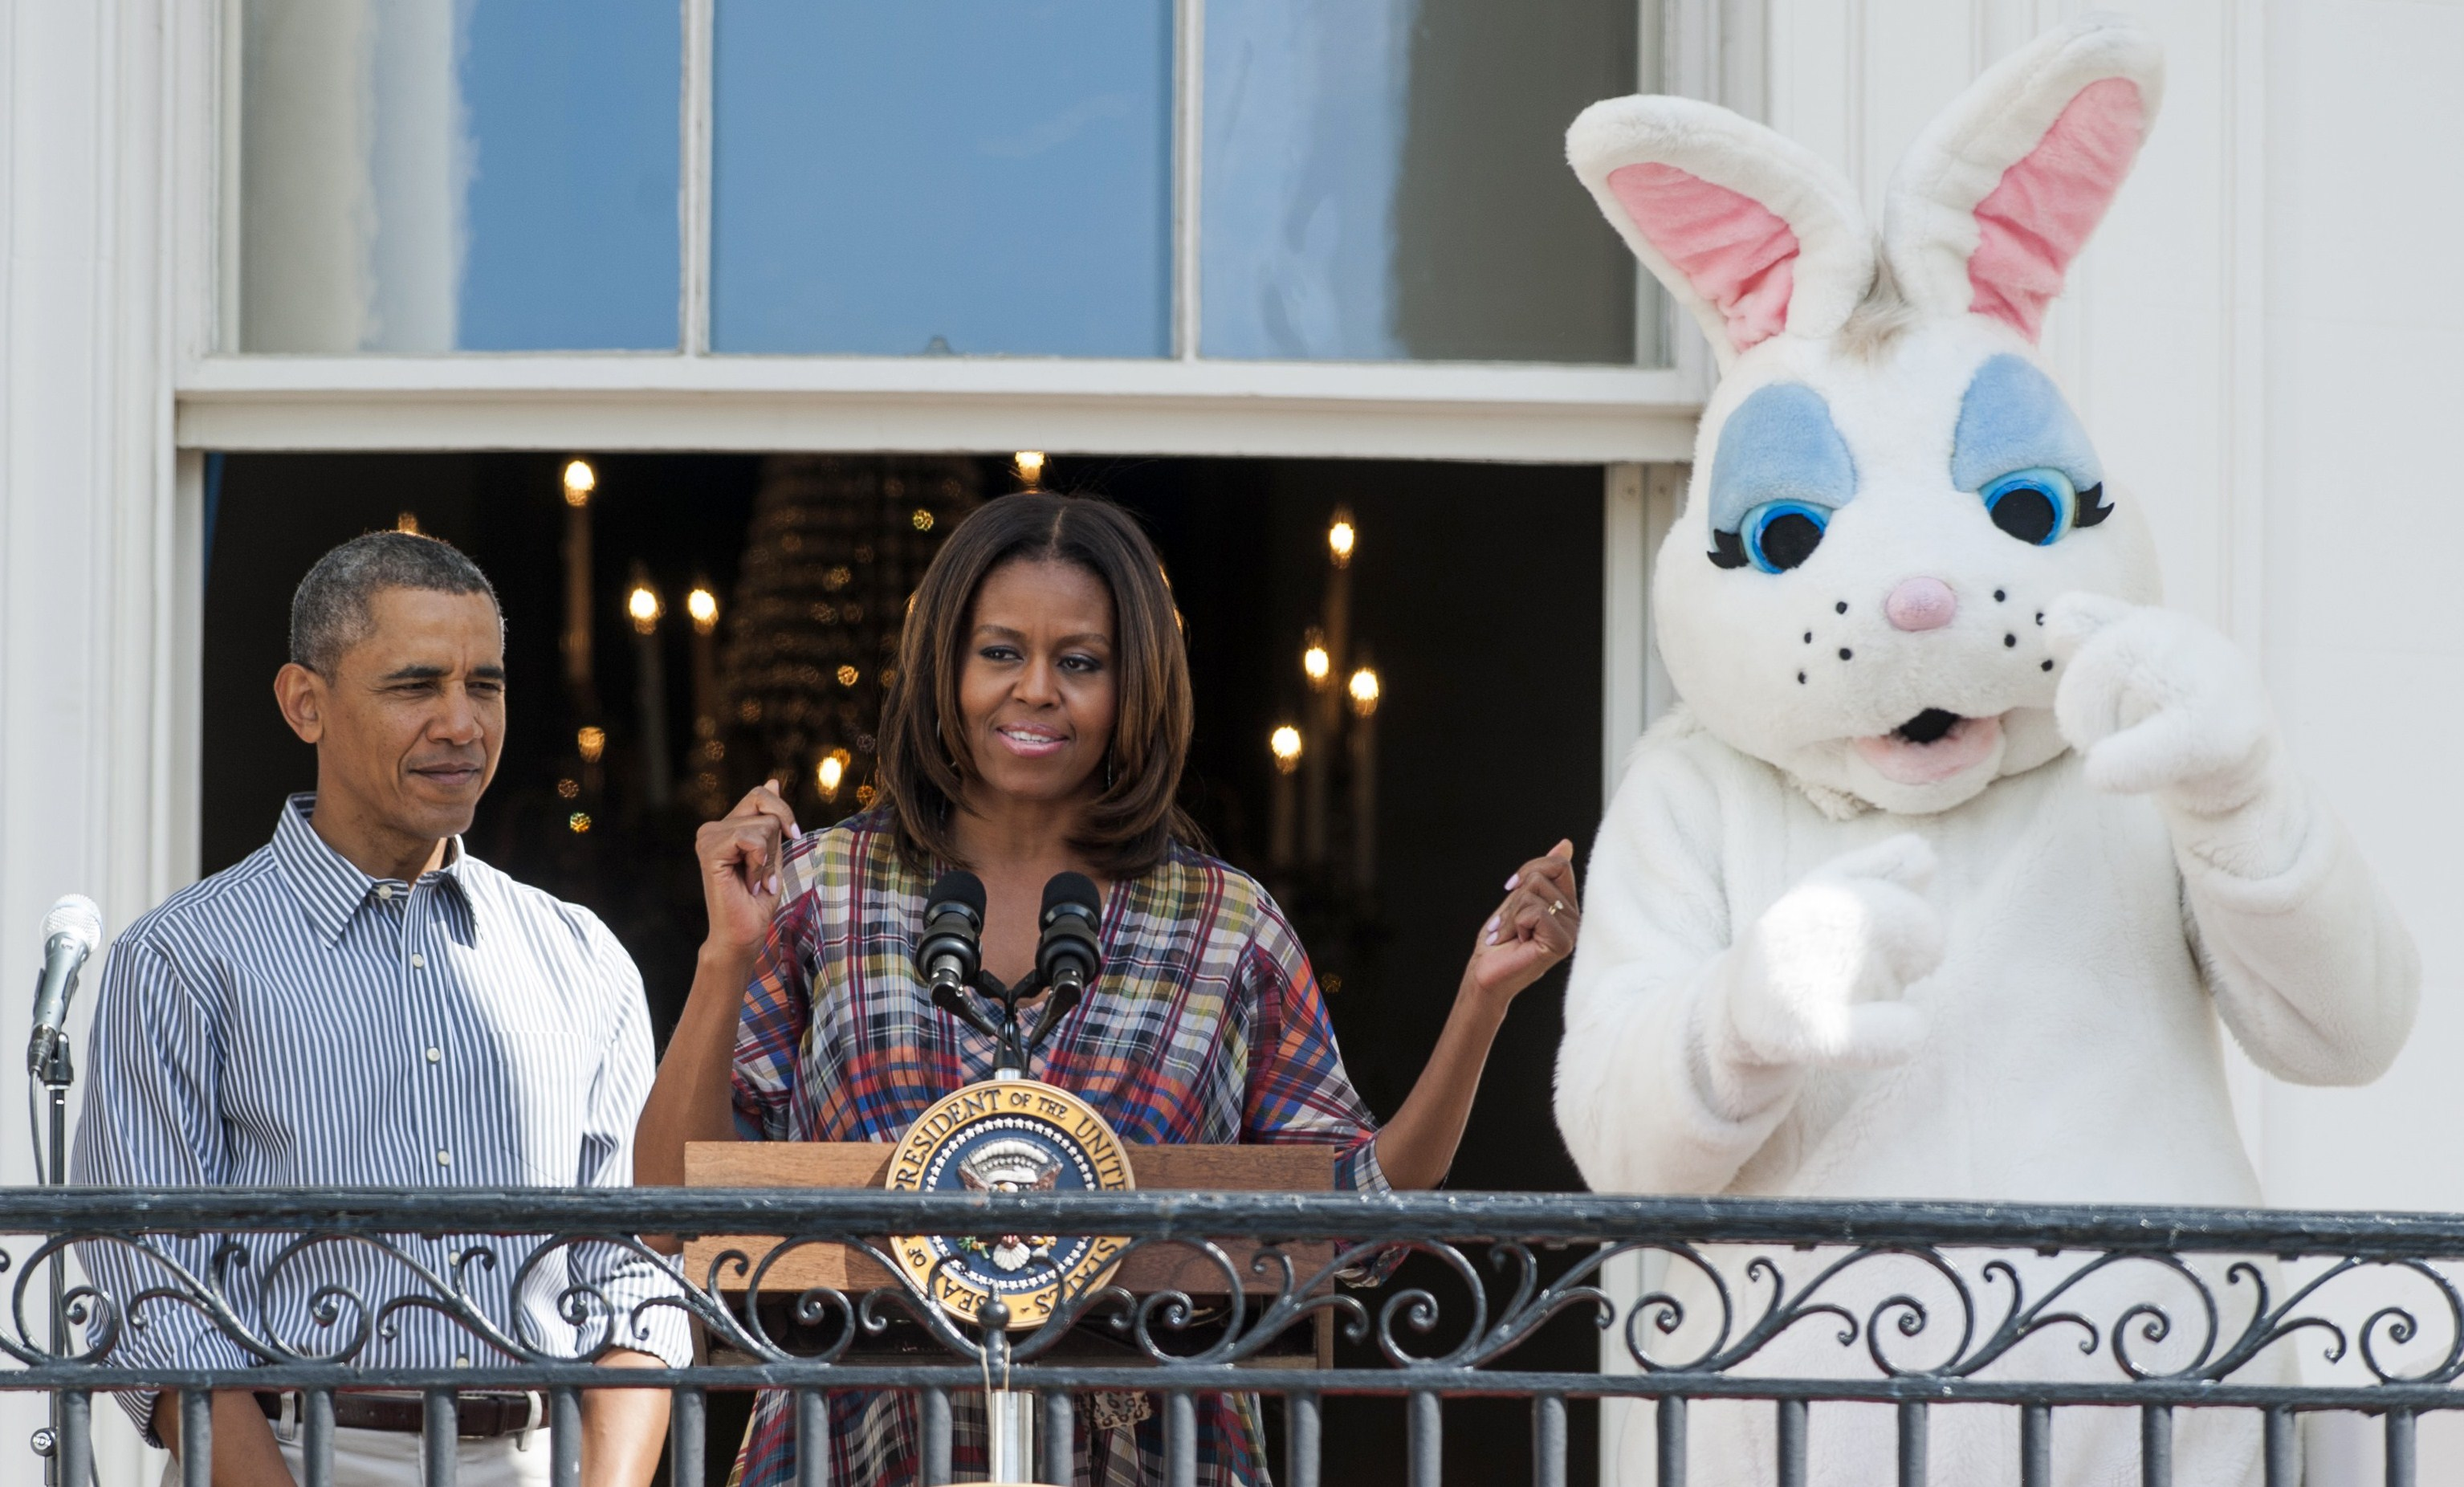 U.S. First Lady Michelle Obama speaks alongside President Barack Obama and the Easter Bunny during the annual White House Easter Egg Roll on the South Lawn of the White House in Washington, D.C., on April 21, 2014